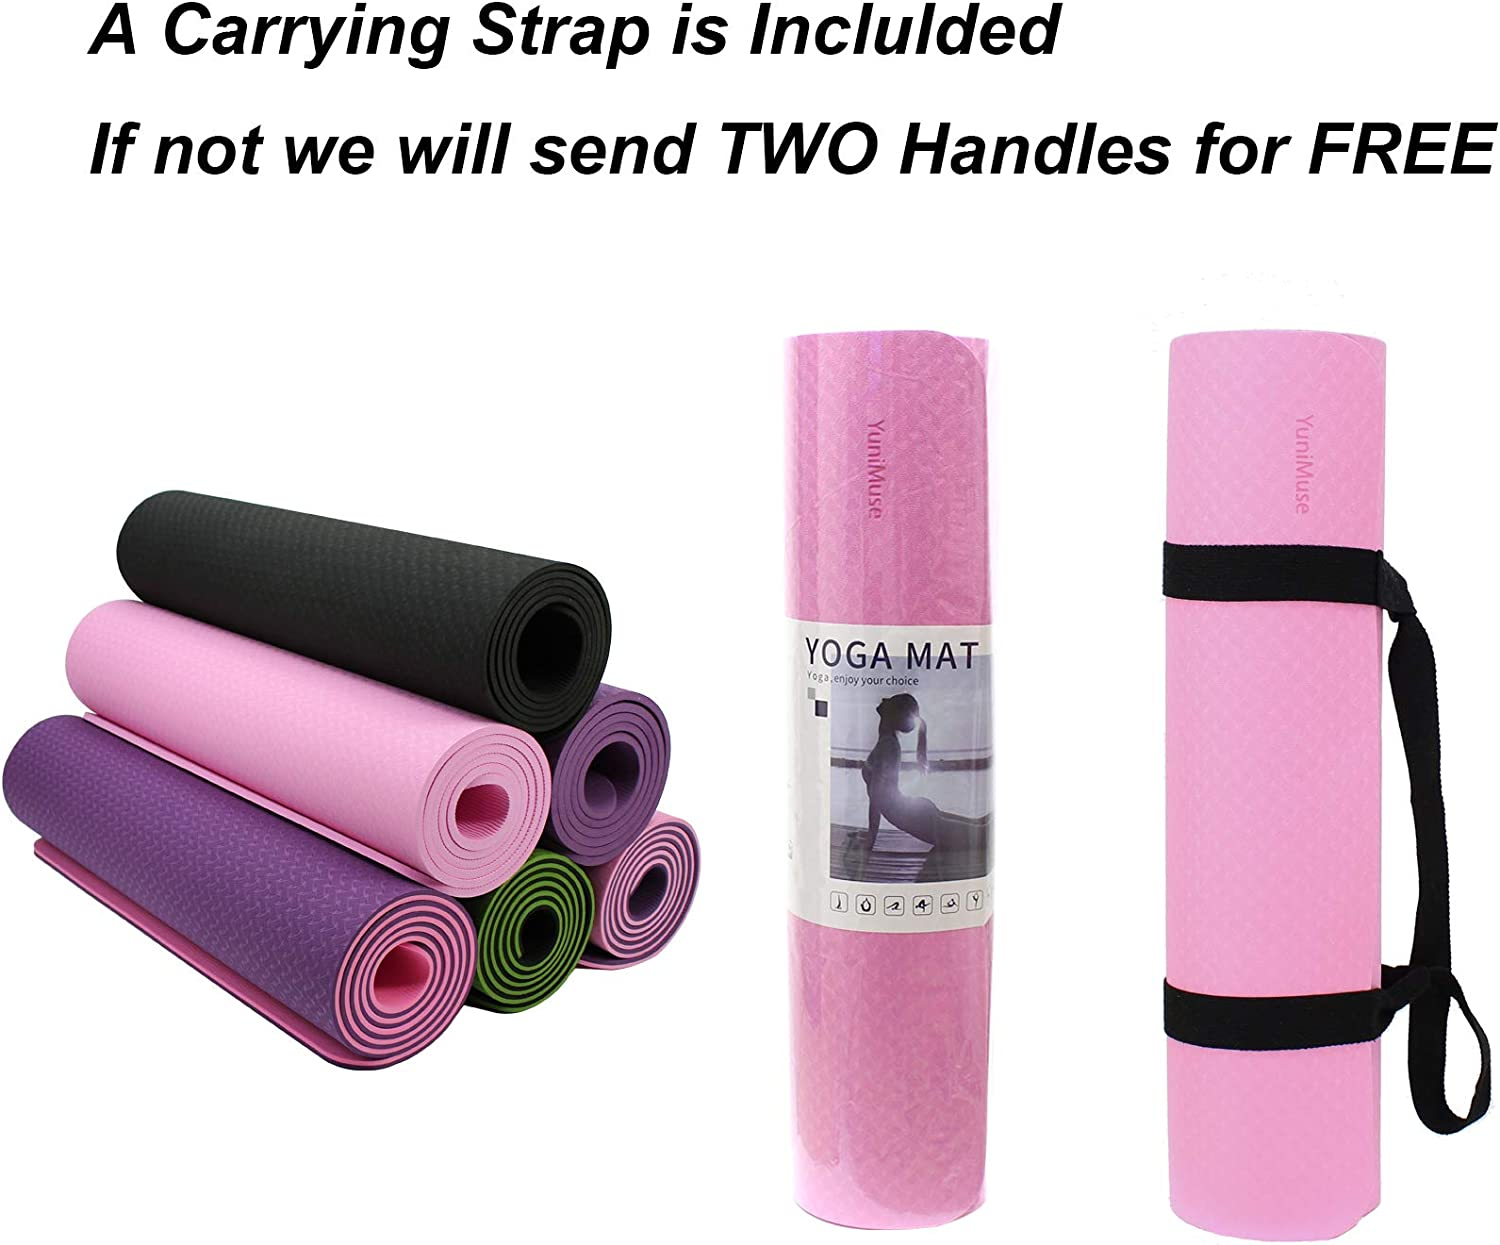 Non-Slip Workout Mat Yoga Mats with Carrying Strap YuniMuse Yoga Mat Exercise Mat Extra Thick 1//3/&1//4 72x 24 SGS Certified Eco Friendly TPE High Density Yoga Mat for Women Men Pilates